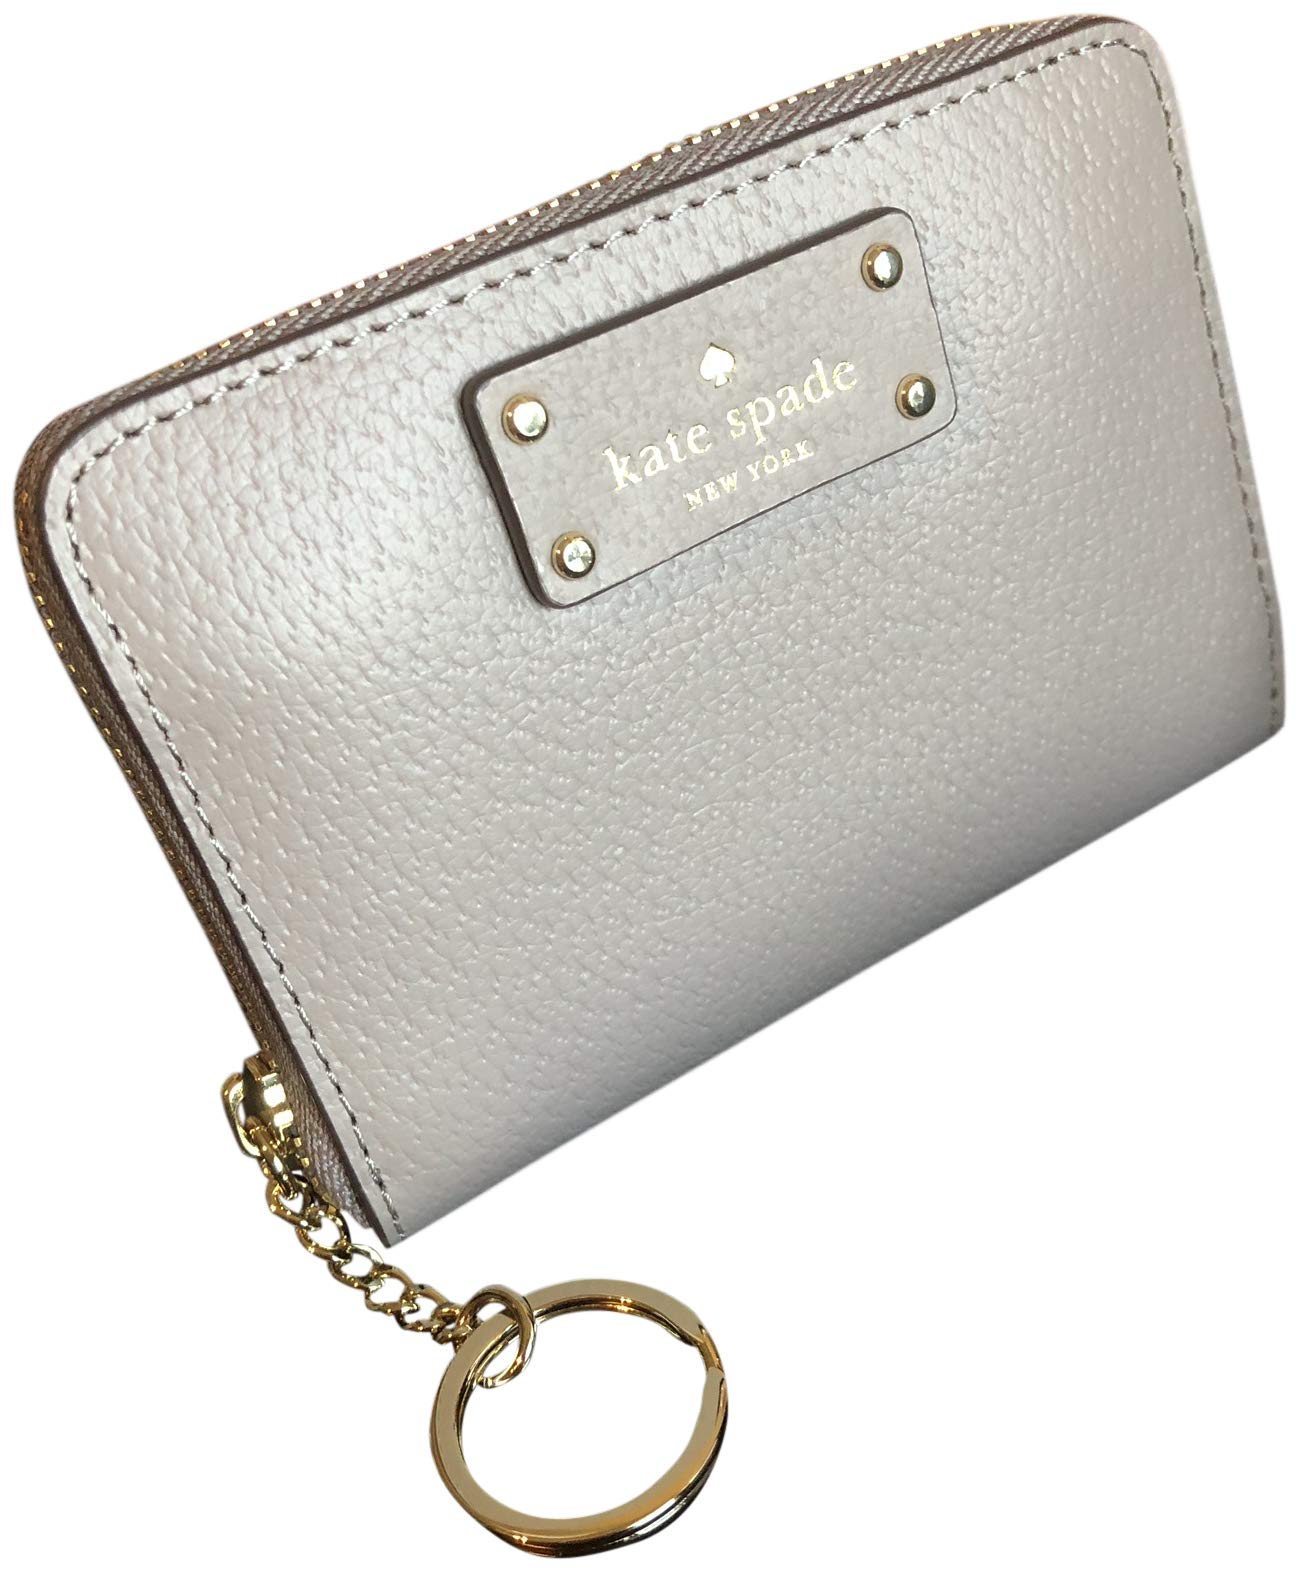 Kate Spade Grove Street Dani Leather Zip Around Wallet Key Chain Ring Cityscape by Kate Spade New York